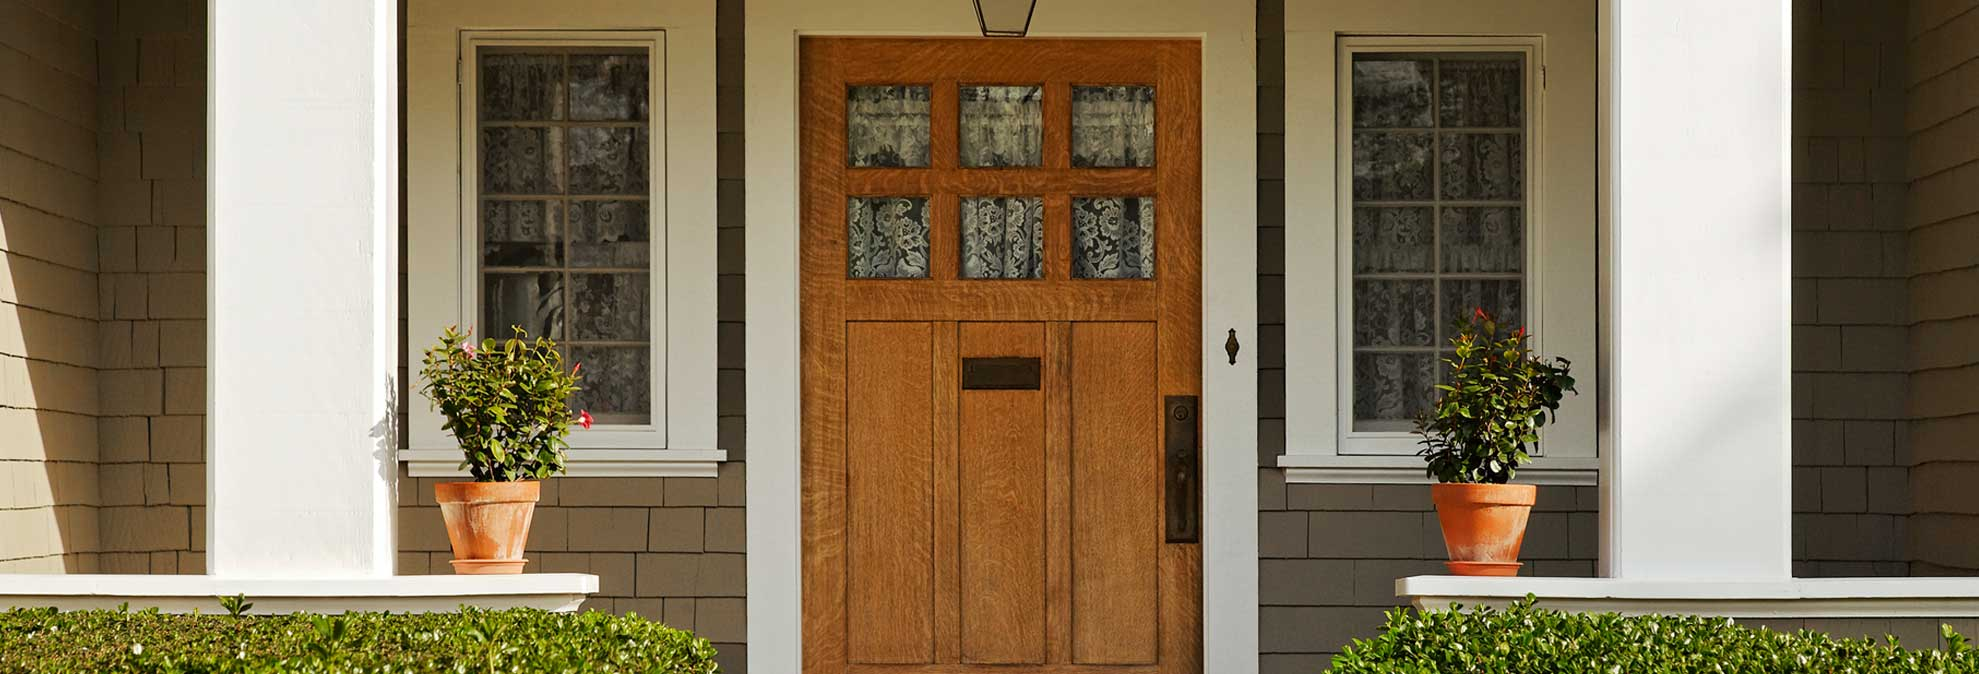 Entrance Doors Best Entry Door Buying Guide Consumer Reports